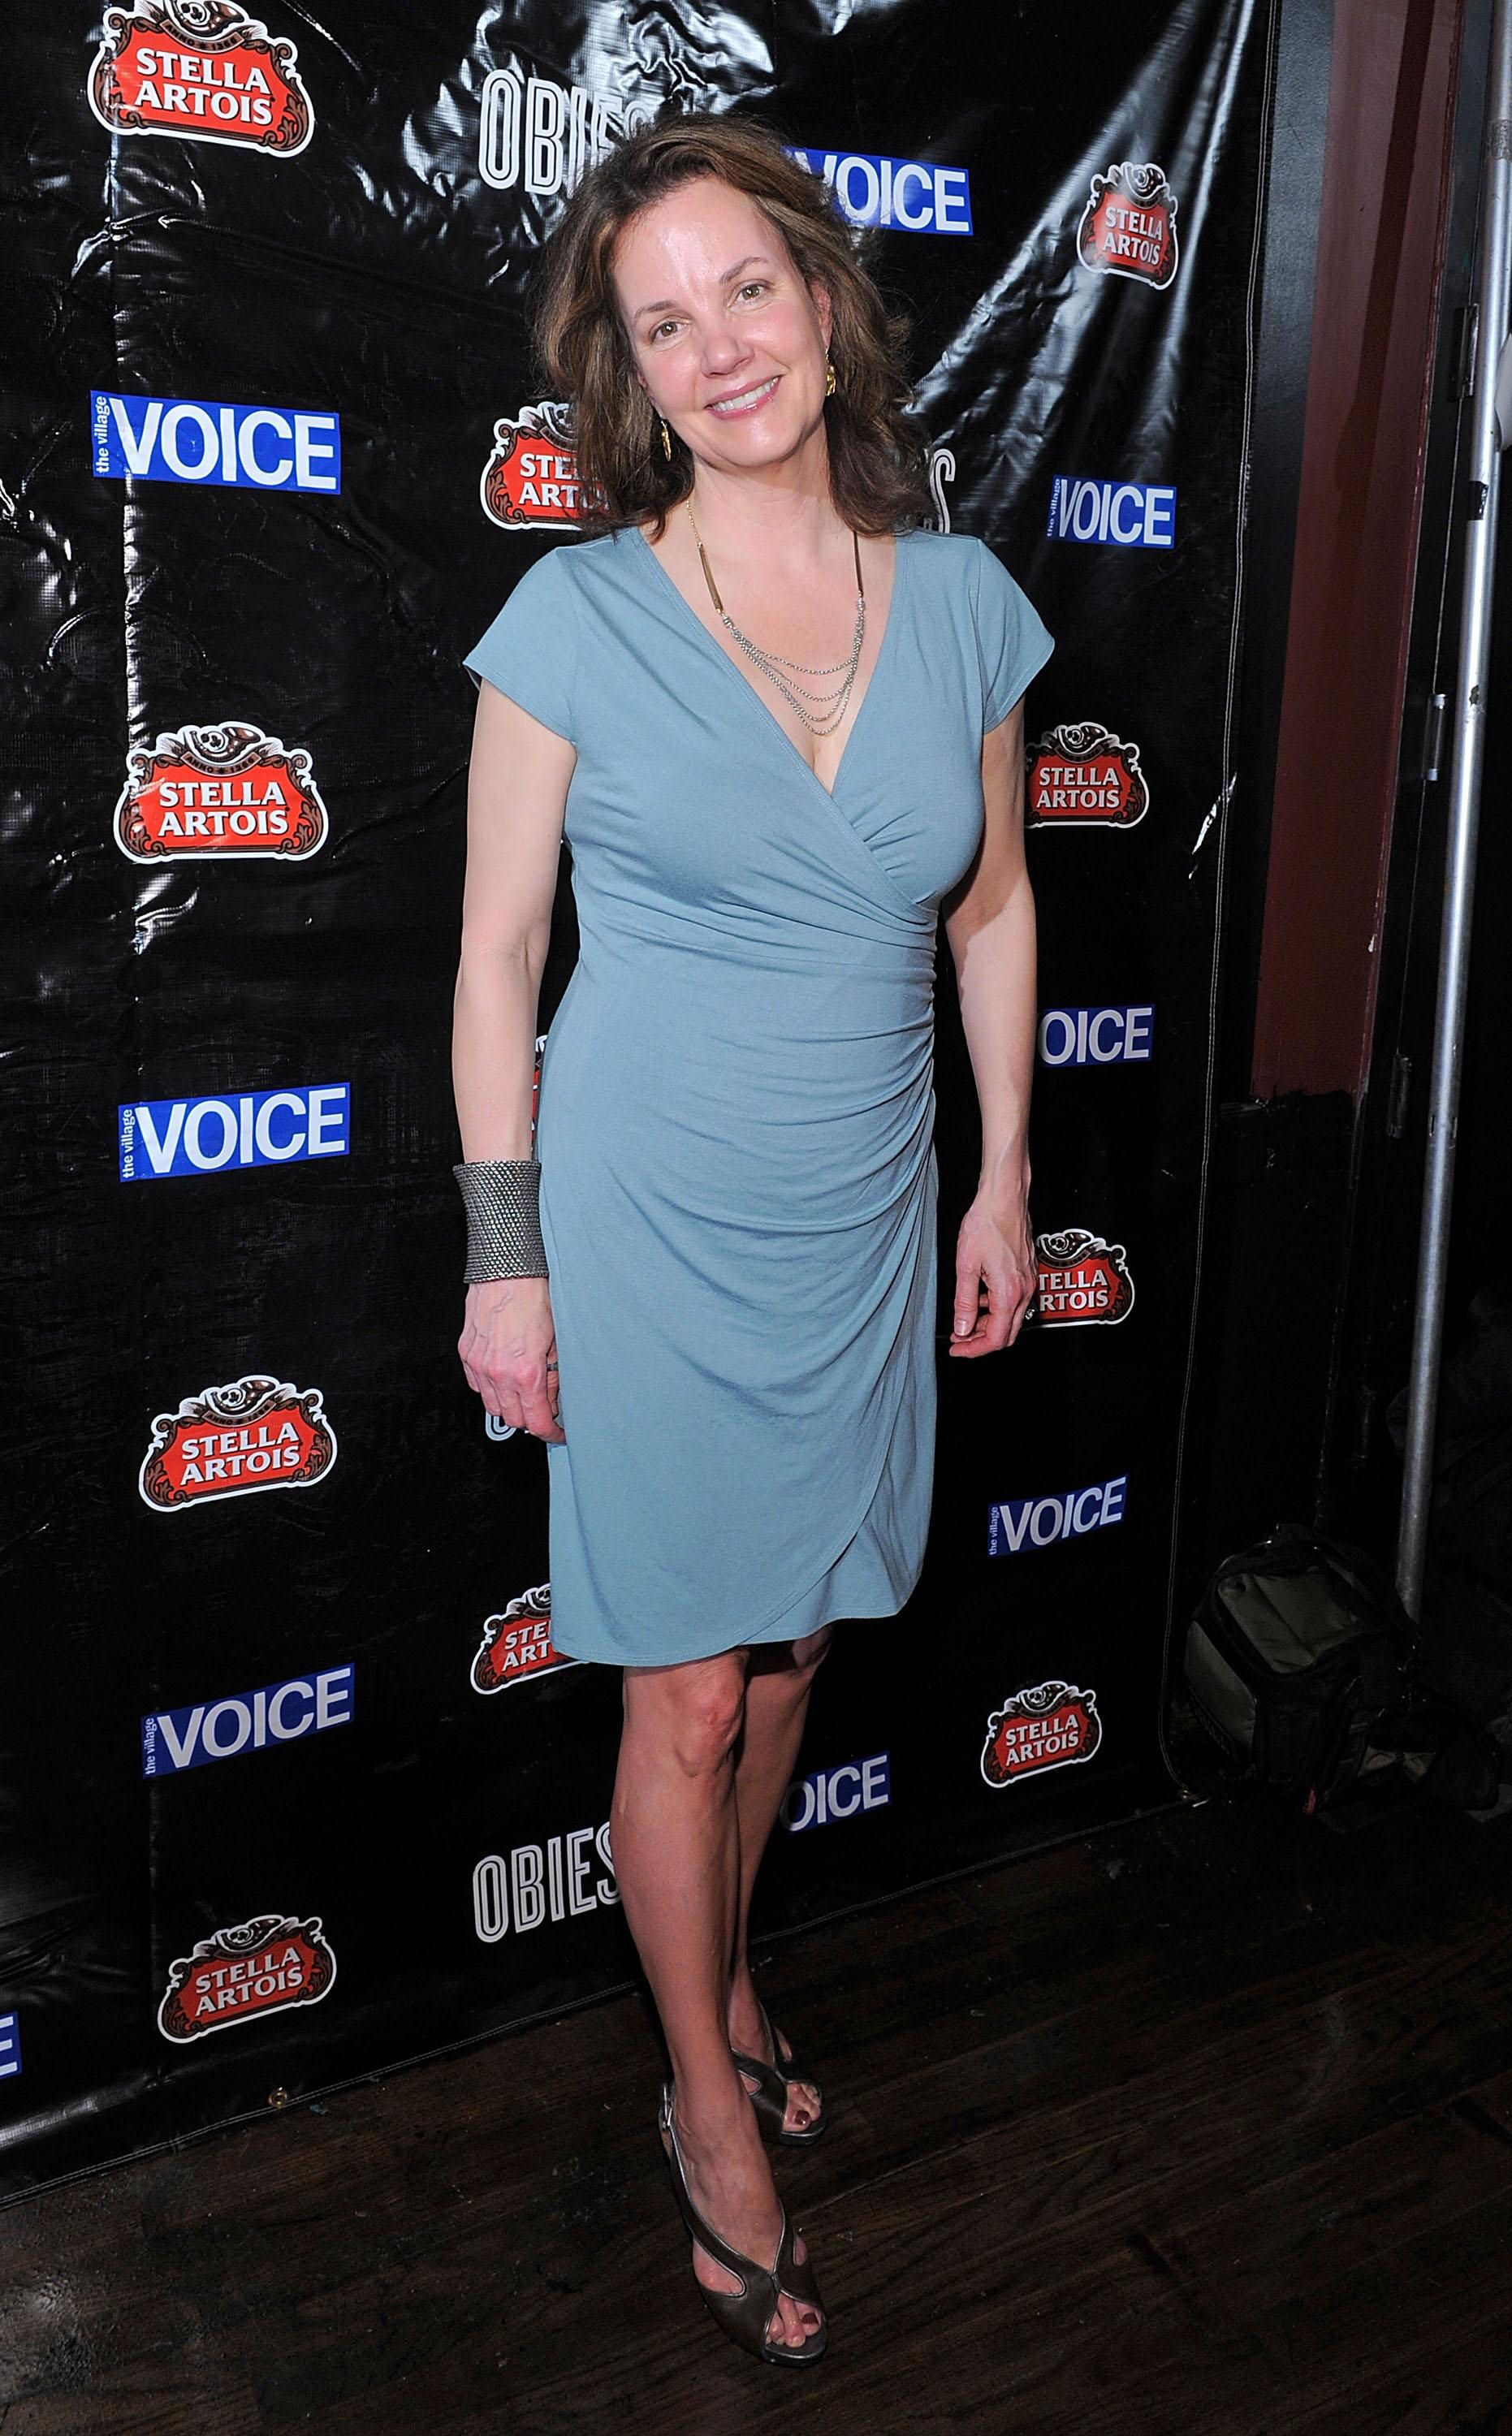 picture Margaret colin prince of broadway premiere in new york